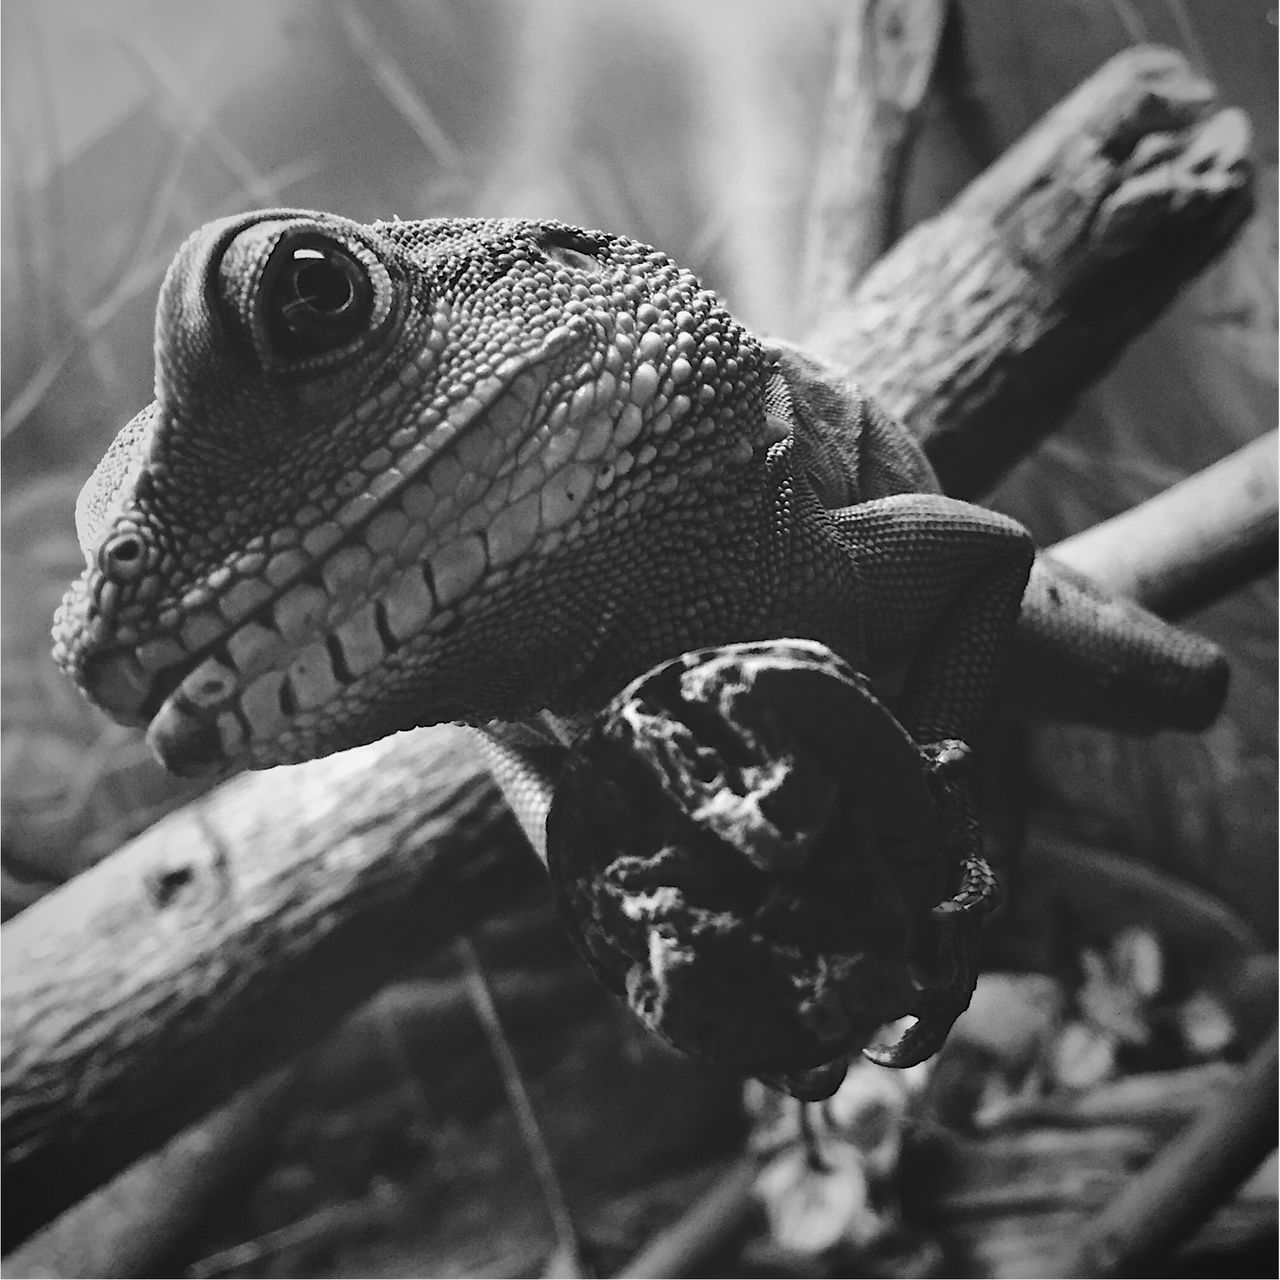 Animal Themes Animal Wildlife Animals In The Wild Brazil Natural Beauty Close-up Lizard Nature One Animal Reptile First Eyeem Photo